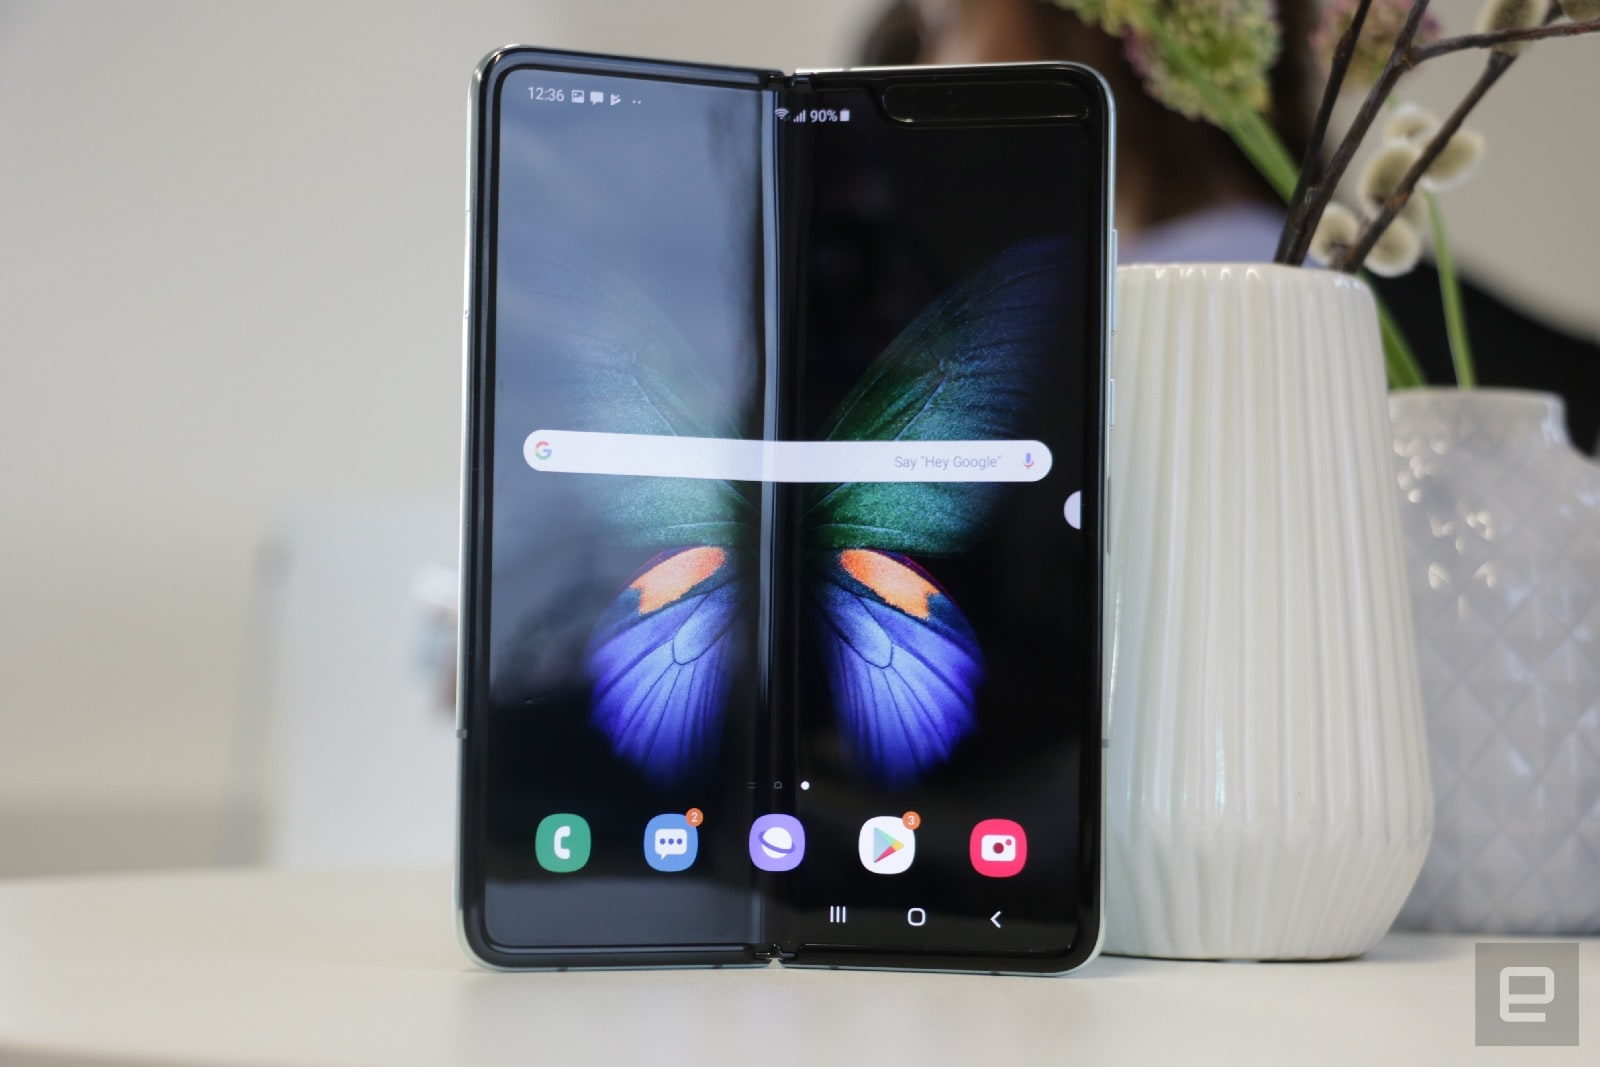 Companies distanced themselves from foldable phone hype at IFA